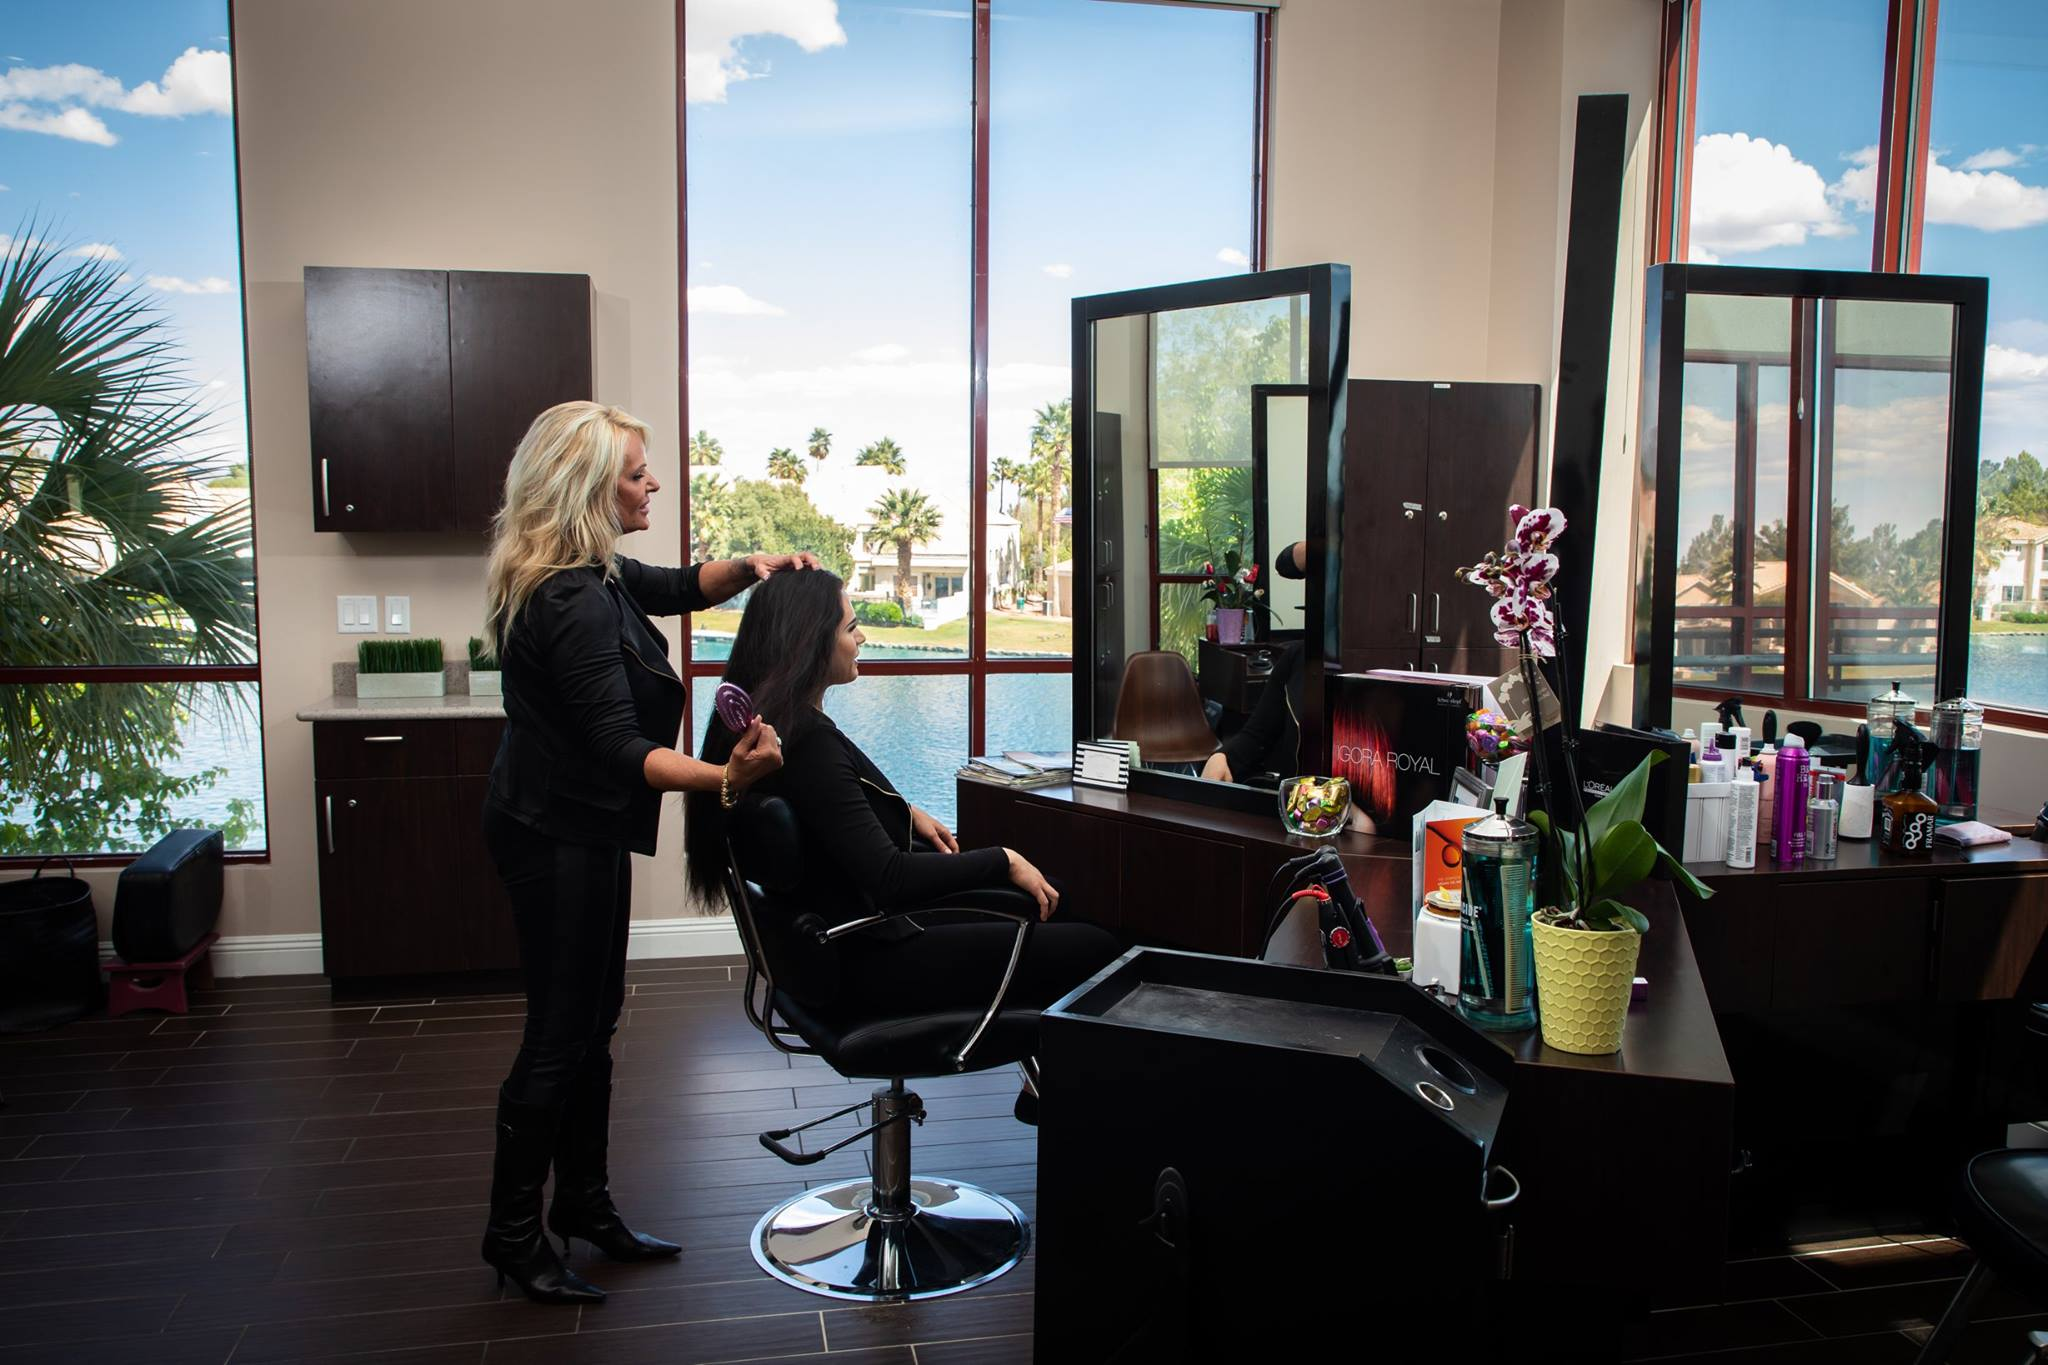 Stylists cutting hair at the Salon at Lakeside with the lake view in the background